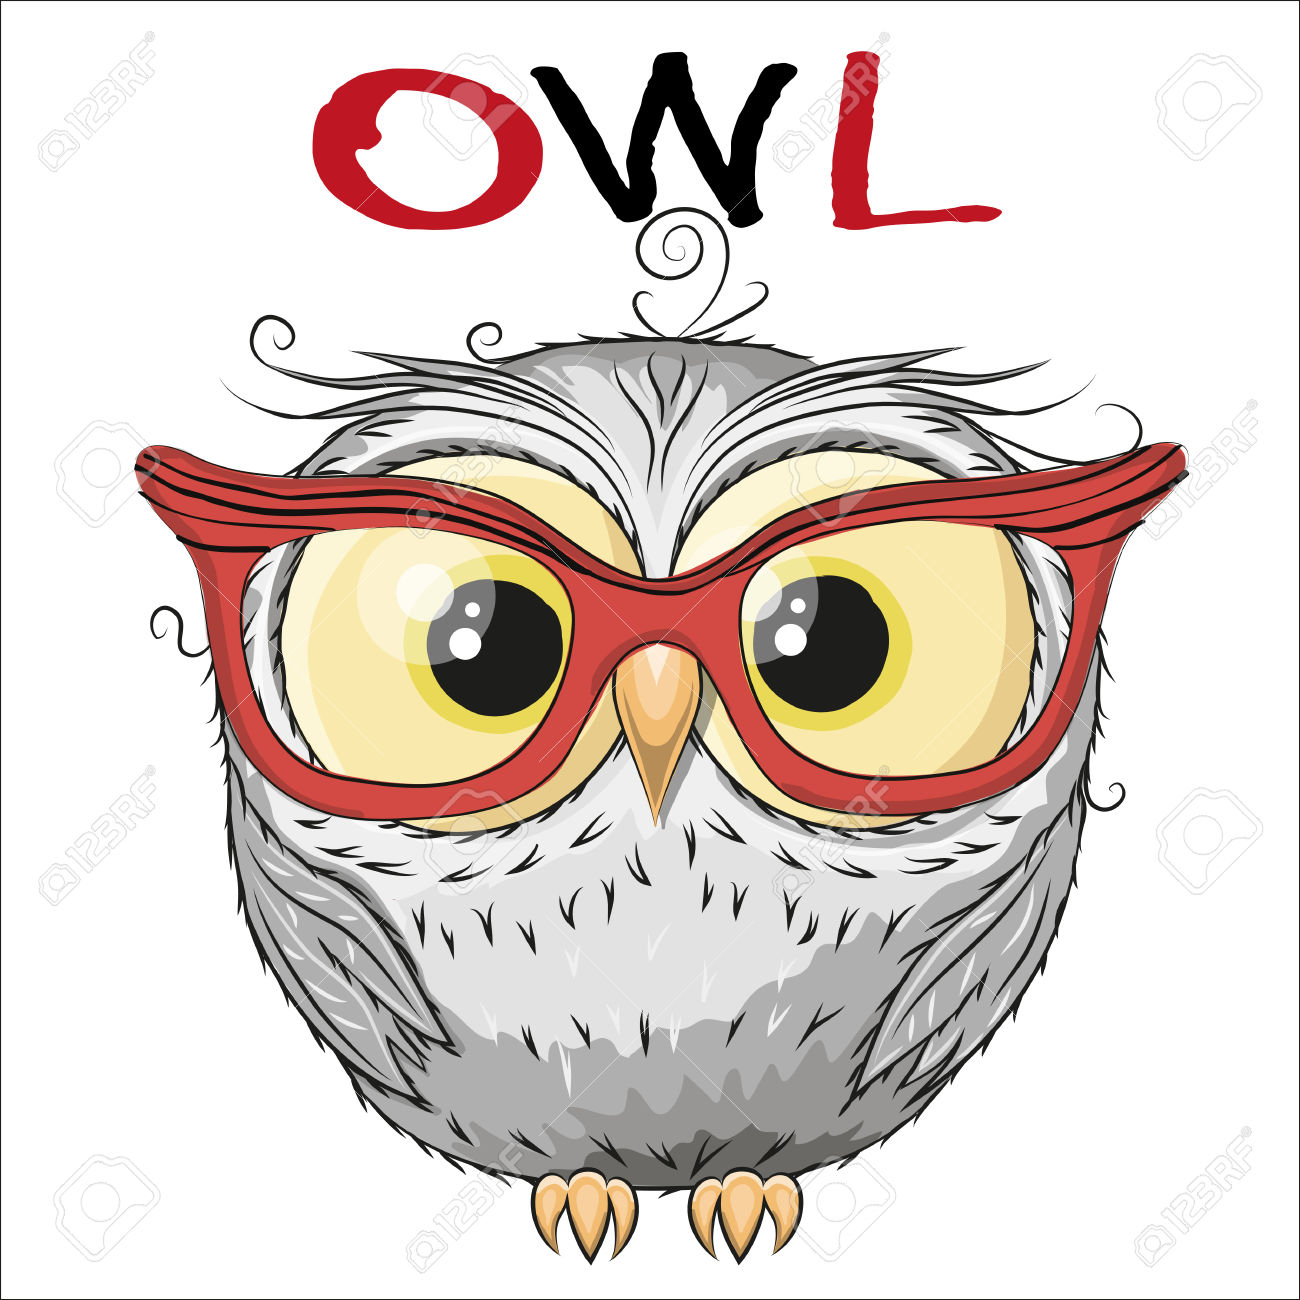 1300x1300 Owl Drawing Cartoon Cute Owl Isolated On A White Background